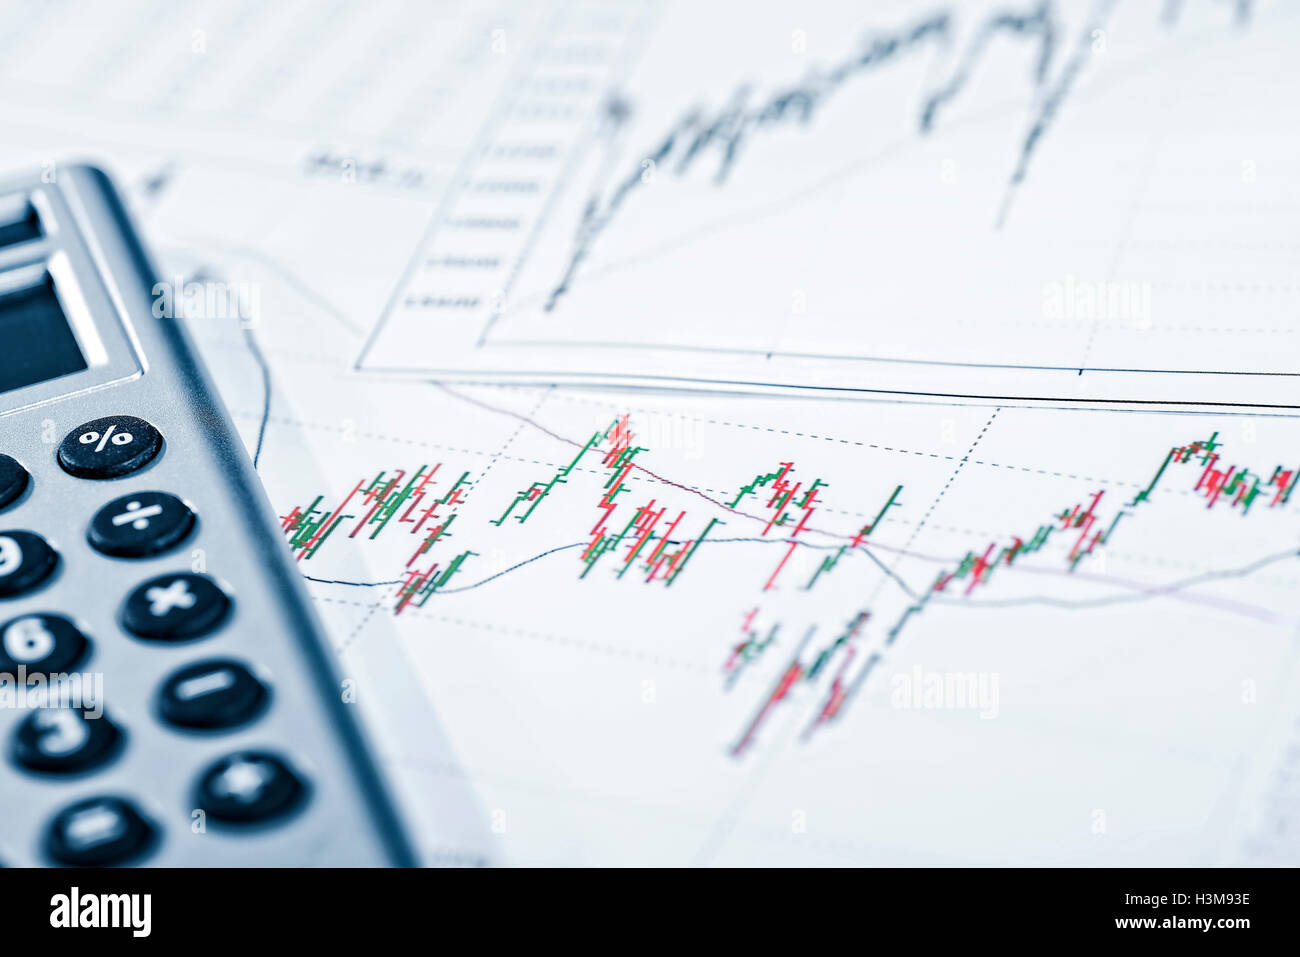 Charts with price development and a calculator - Stock Image